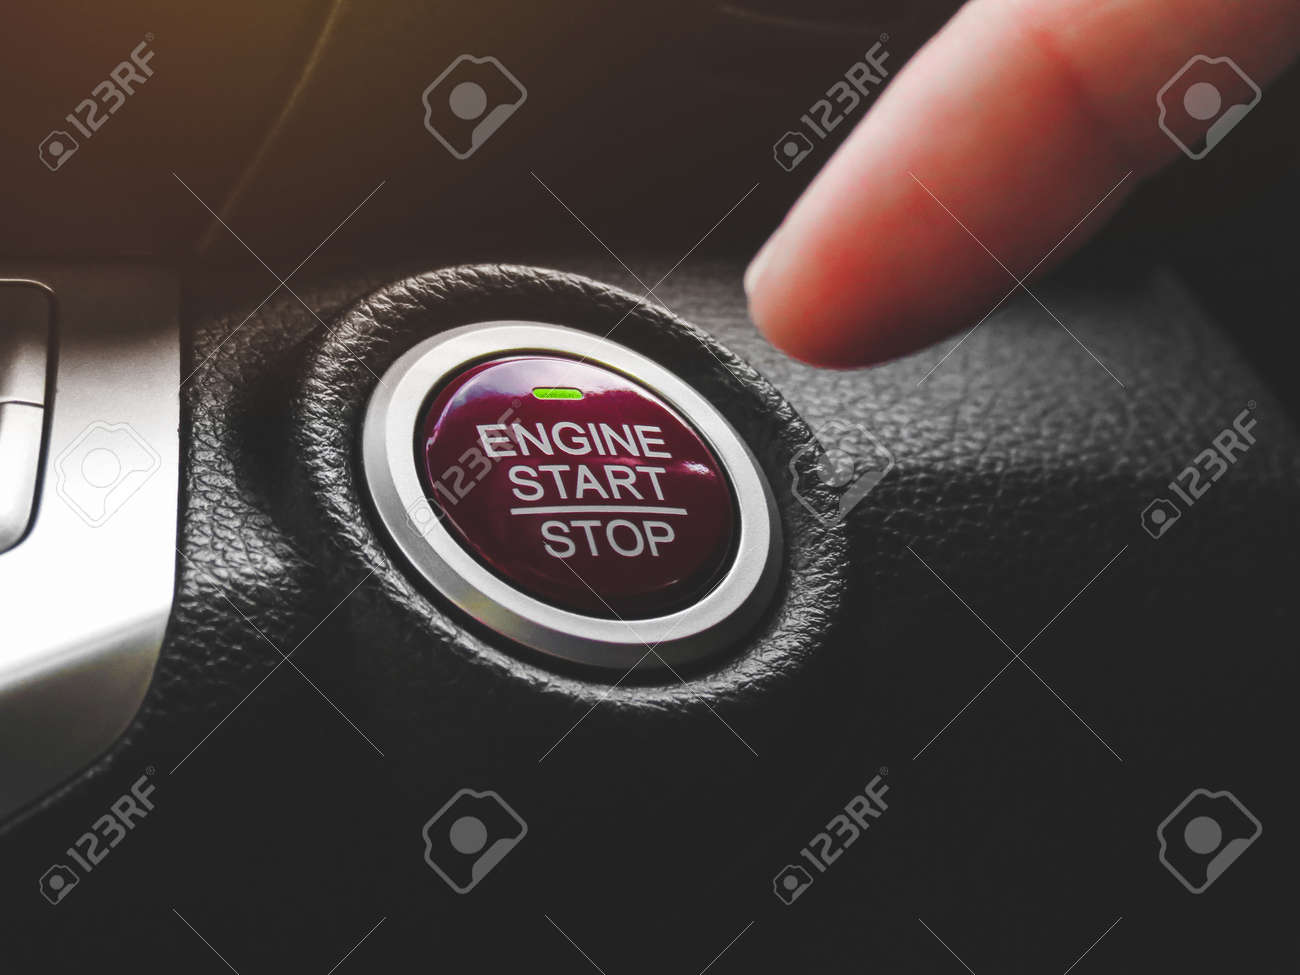 Car driver press to the engine start stop button for engine ignition in a luxury car - 154314254